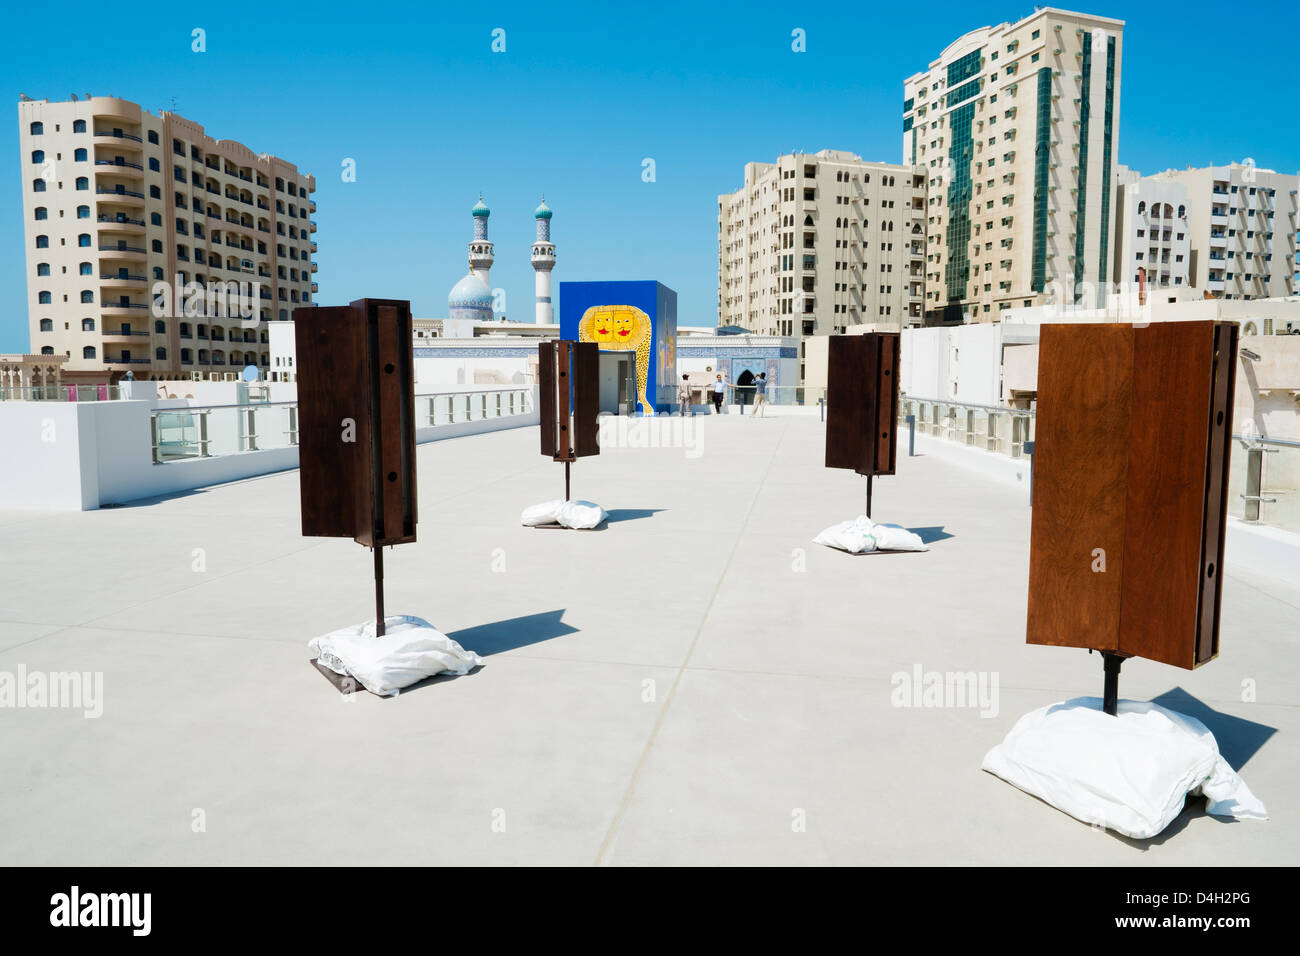 Acoustic installation called Silence Spins by Shiro Takatani on opening day of the 11th Sharjah Biennial Art festival - Stock Image